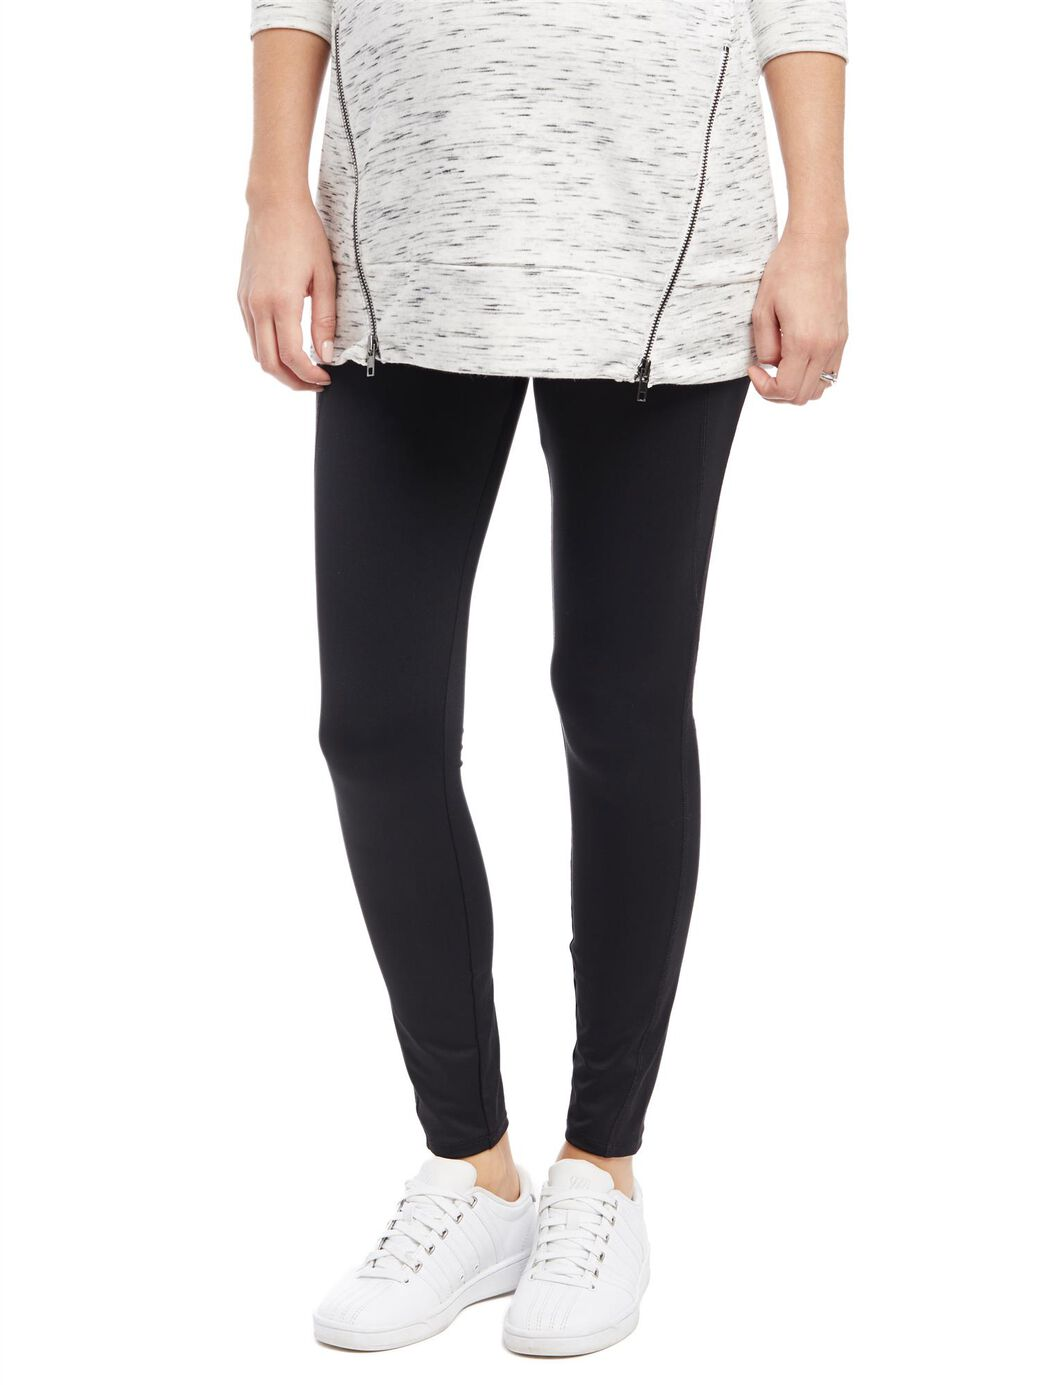 Secret Fit Belly Maternity Performance Legging at Motherhood Maternity in Victor, NY | Tuggl